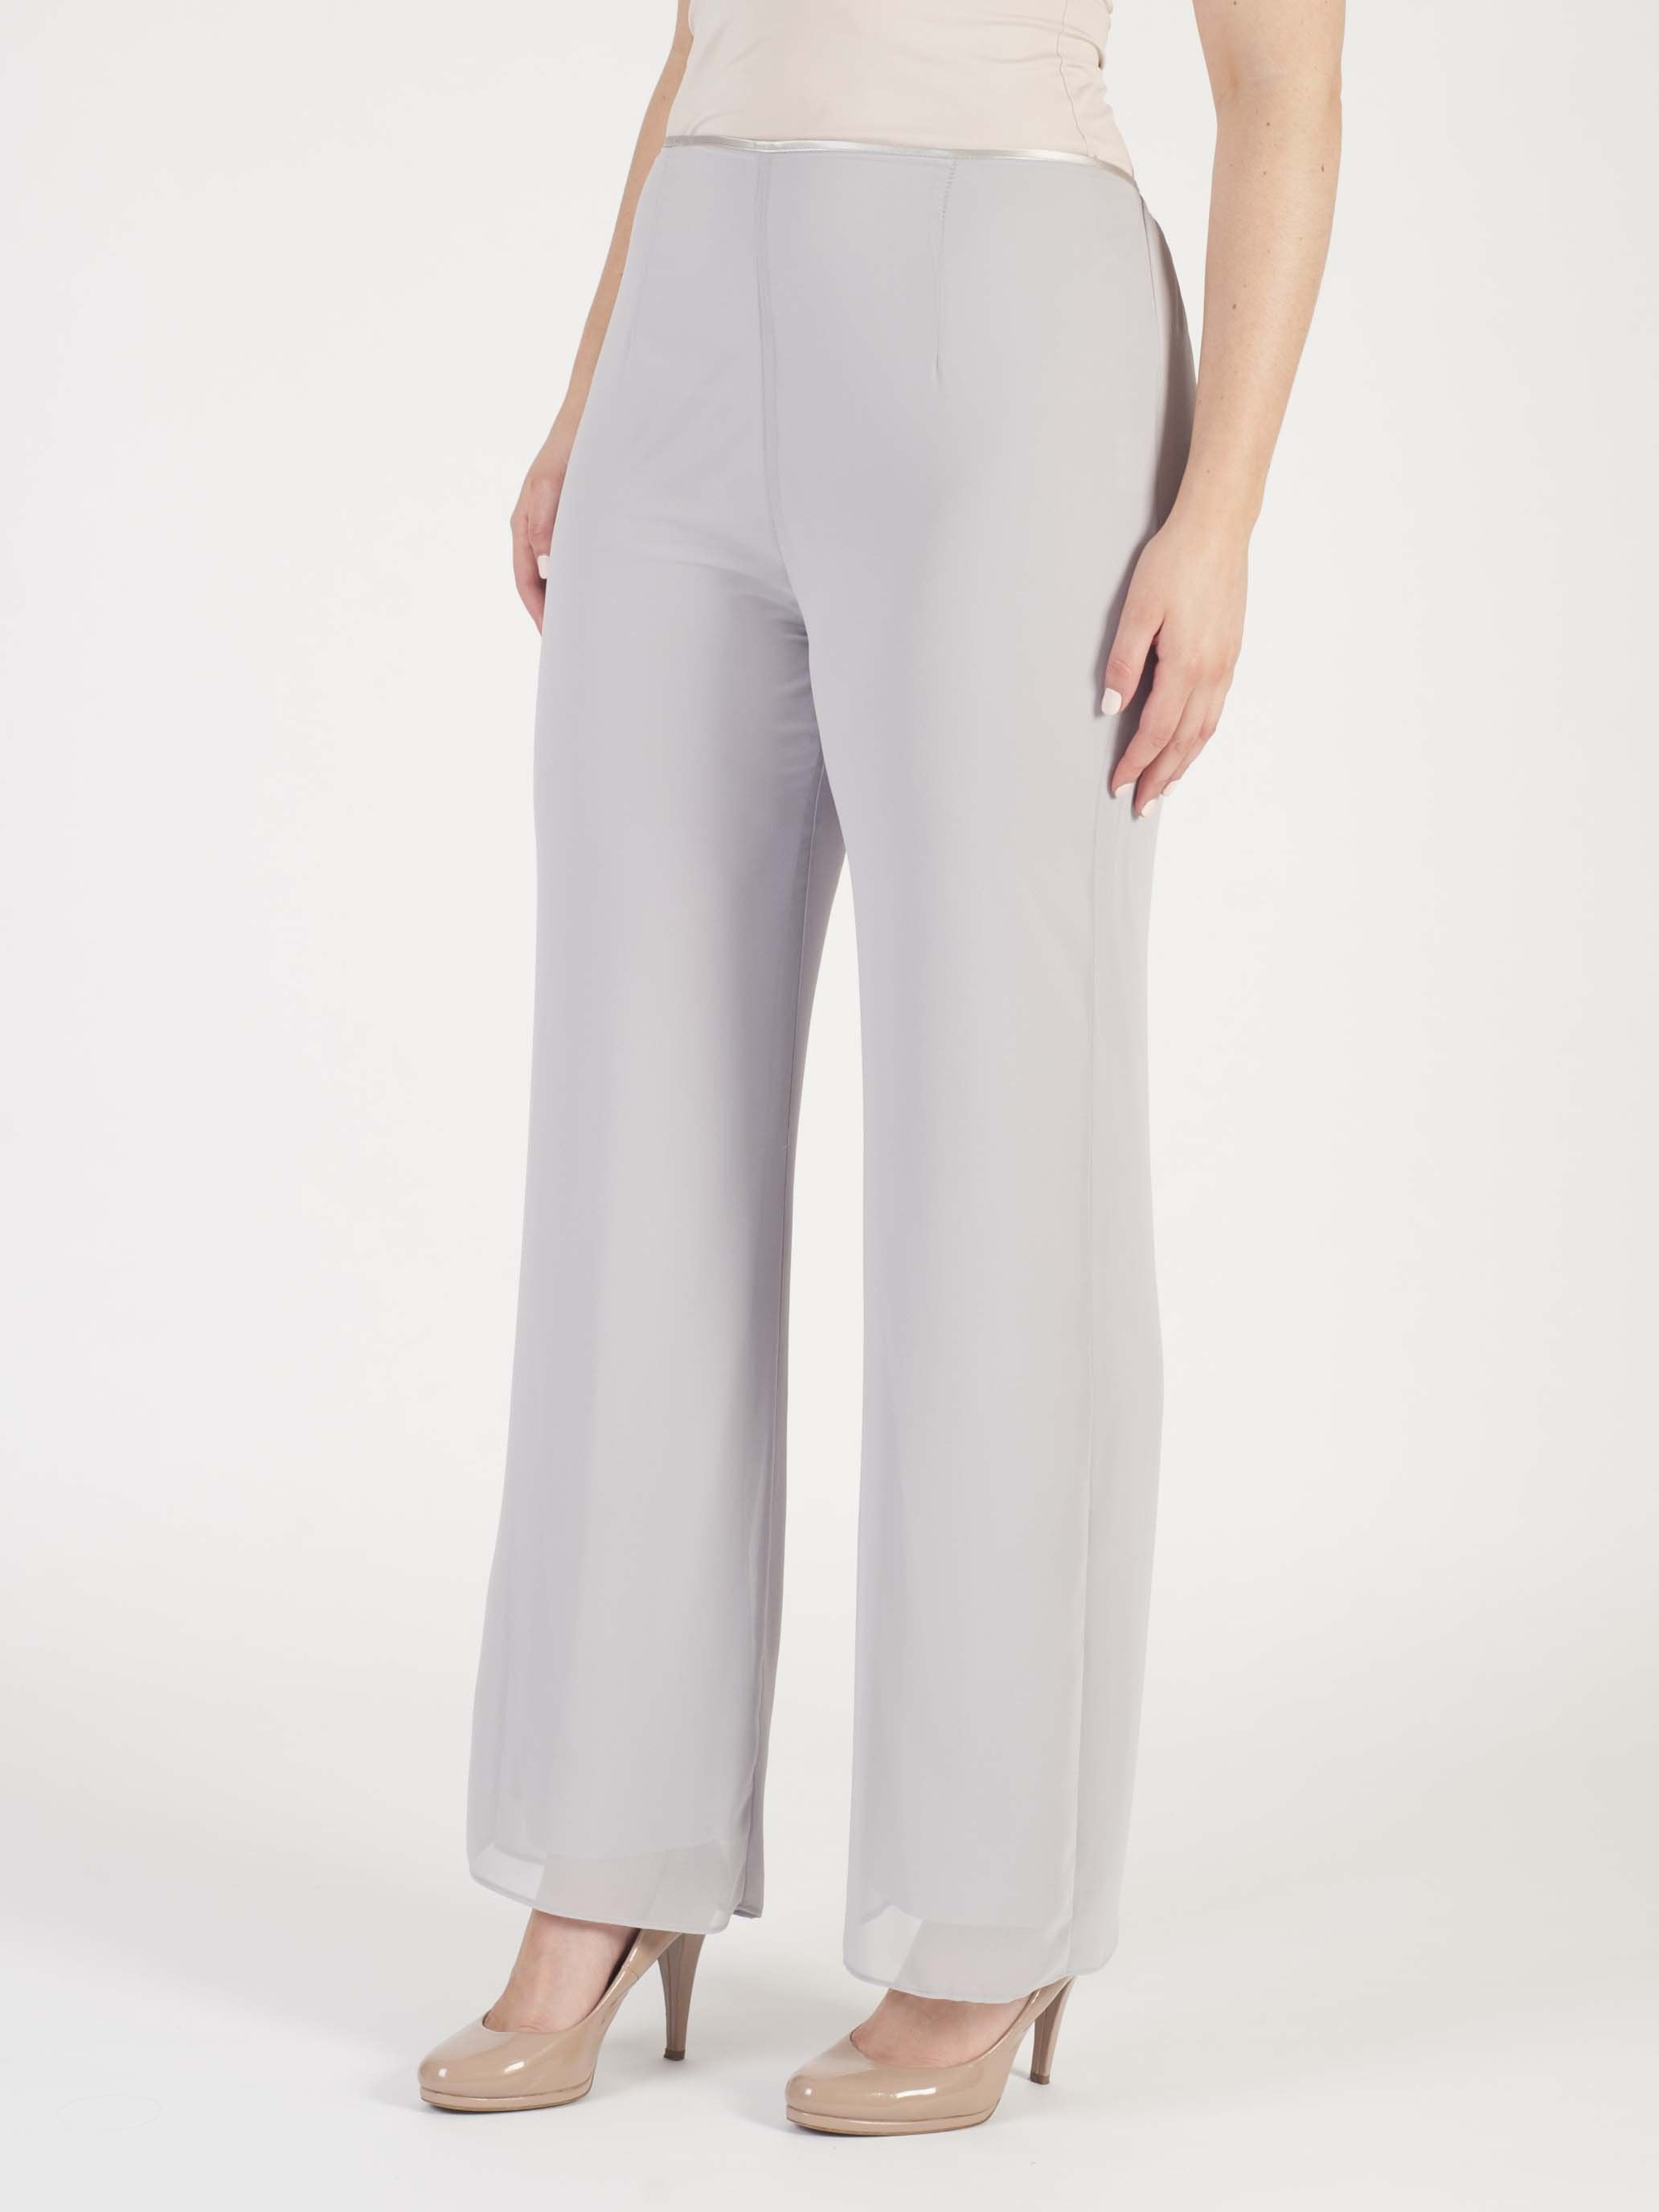 Soft Grey Chiffon Trouser